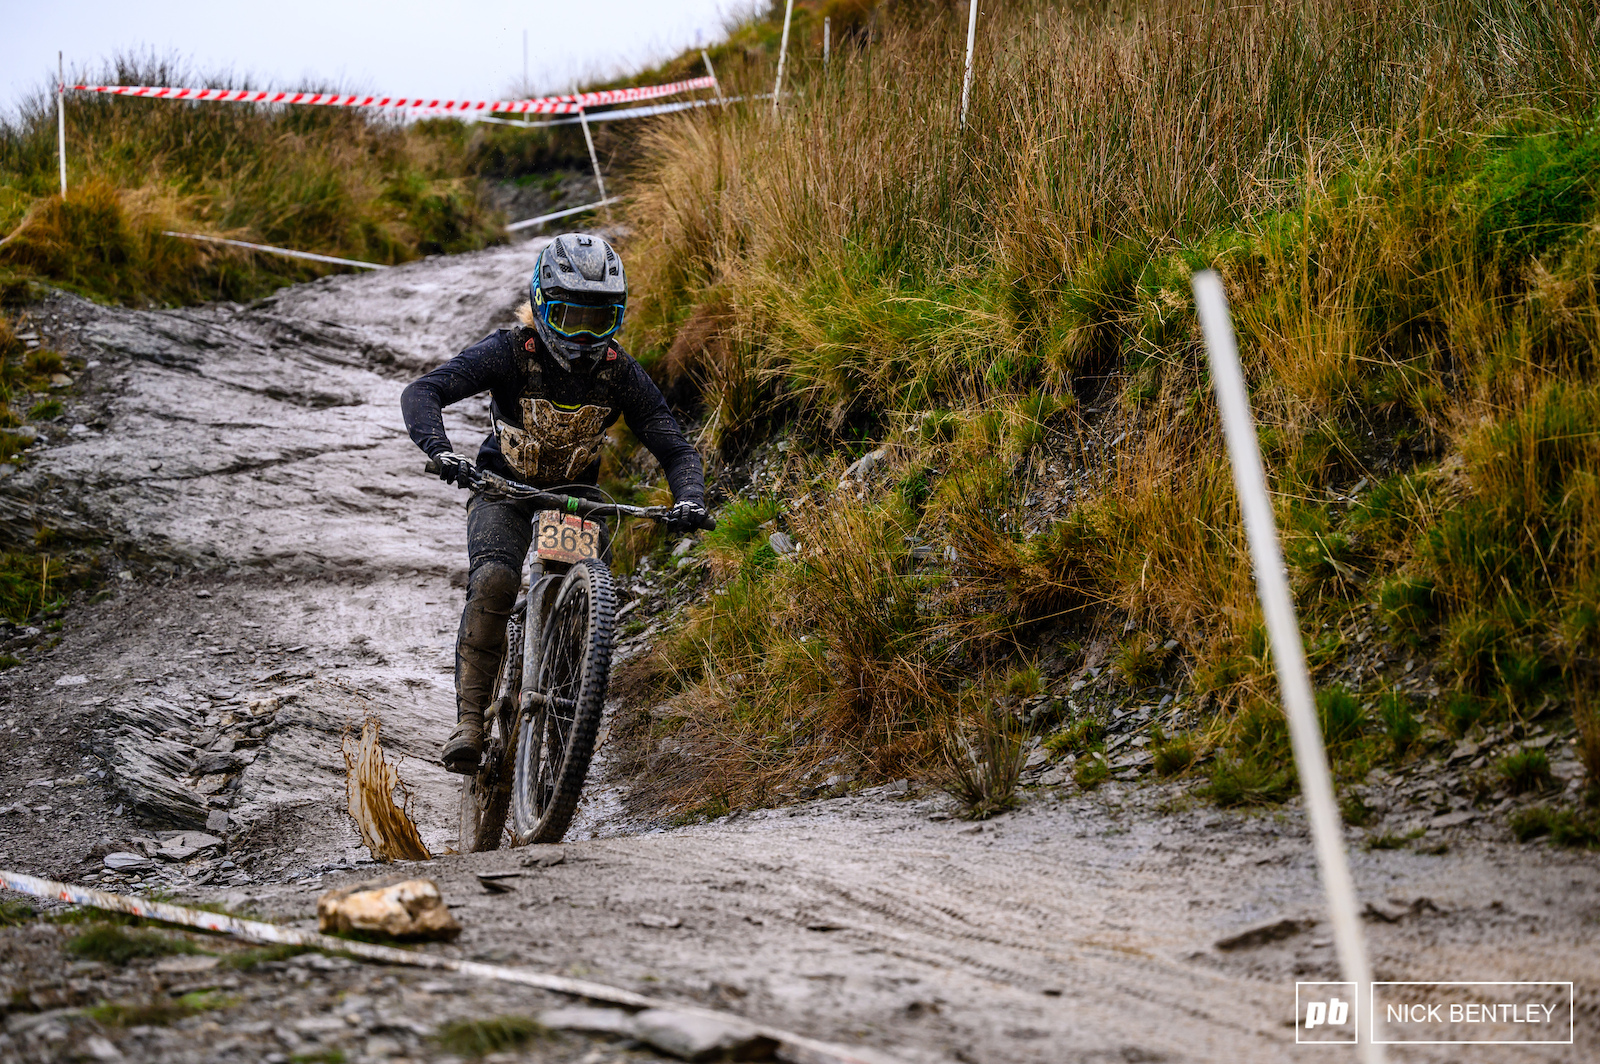 The afternoon began with a rain shower which left plenty of slick wet rocks and puddles for the riders to navigate